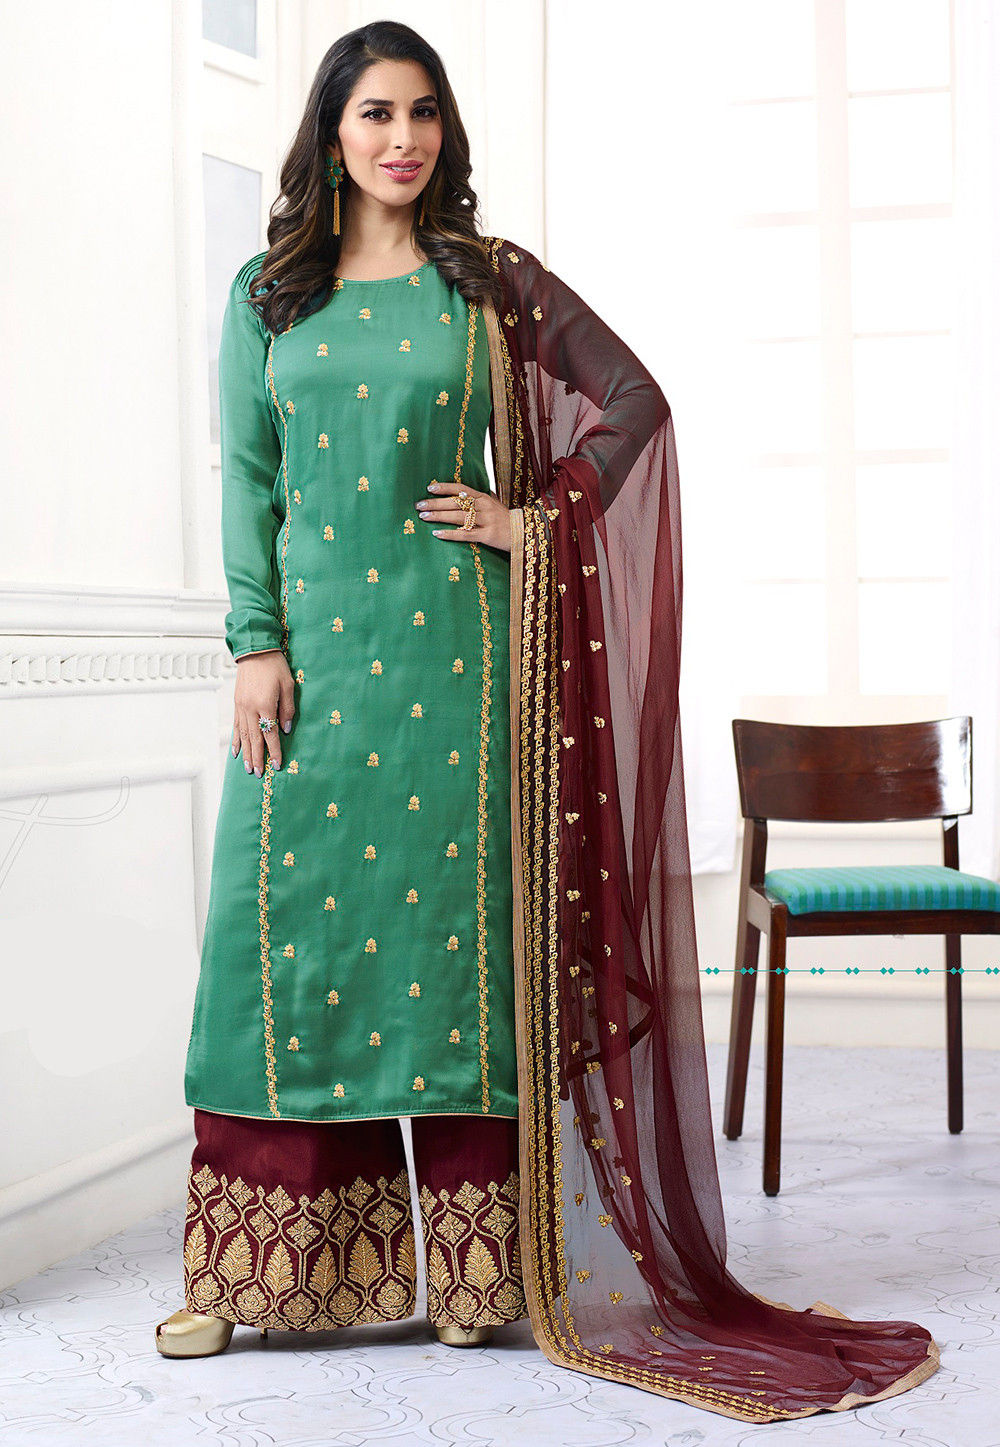 Embroidered Satin Georgette Pakistani Suit in Light Teal Green